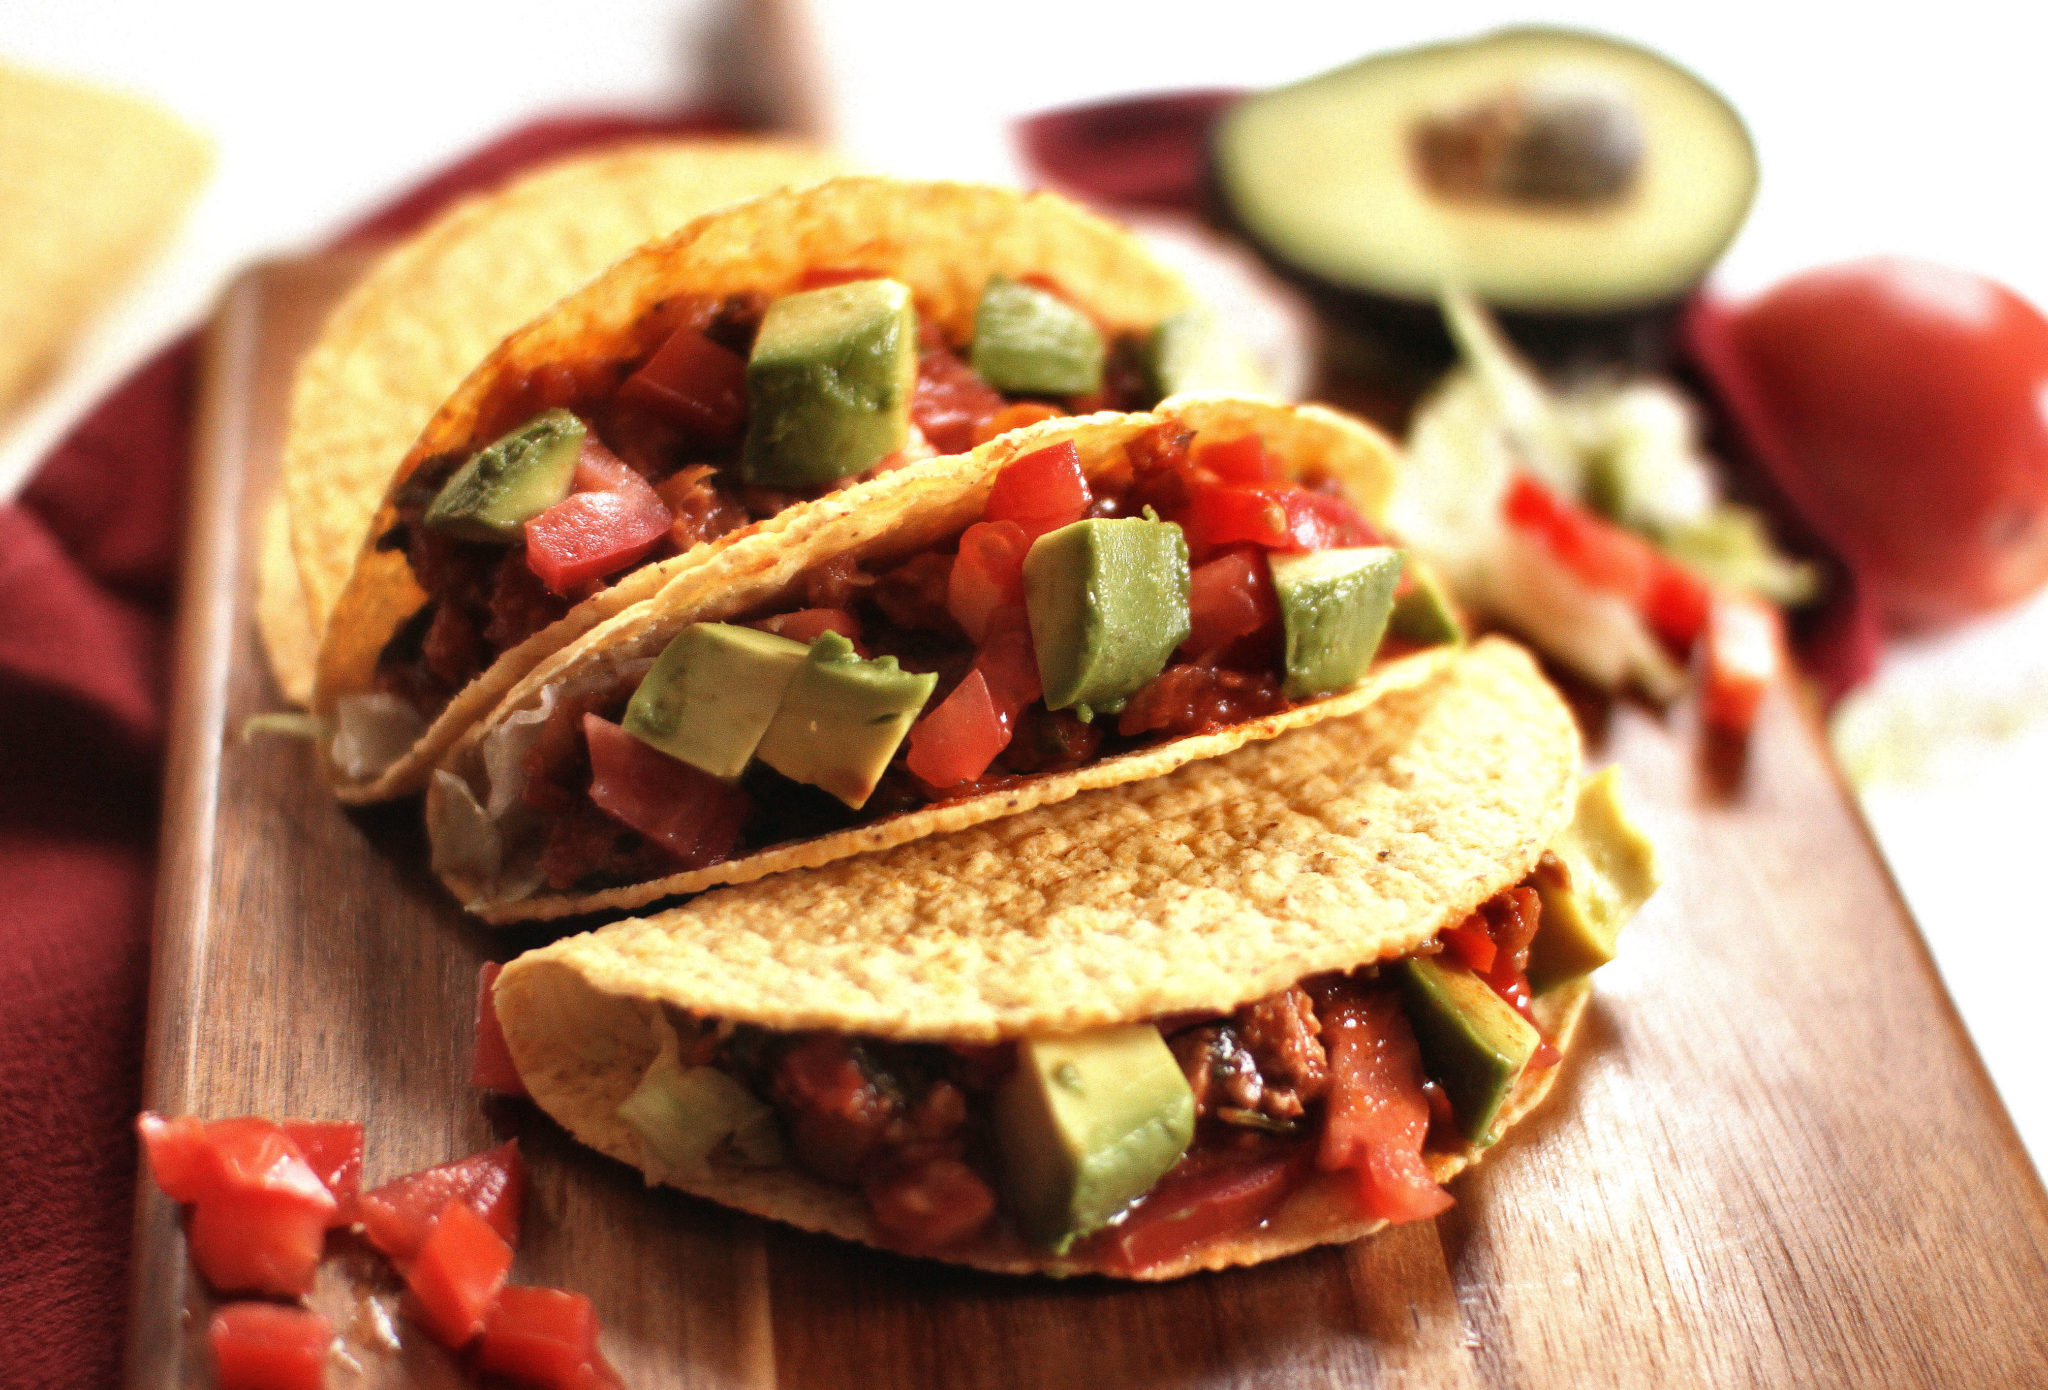 Chicken Tacos - Loaded with Veggies